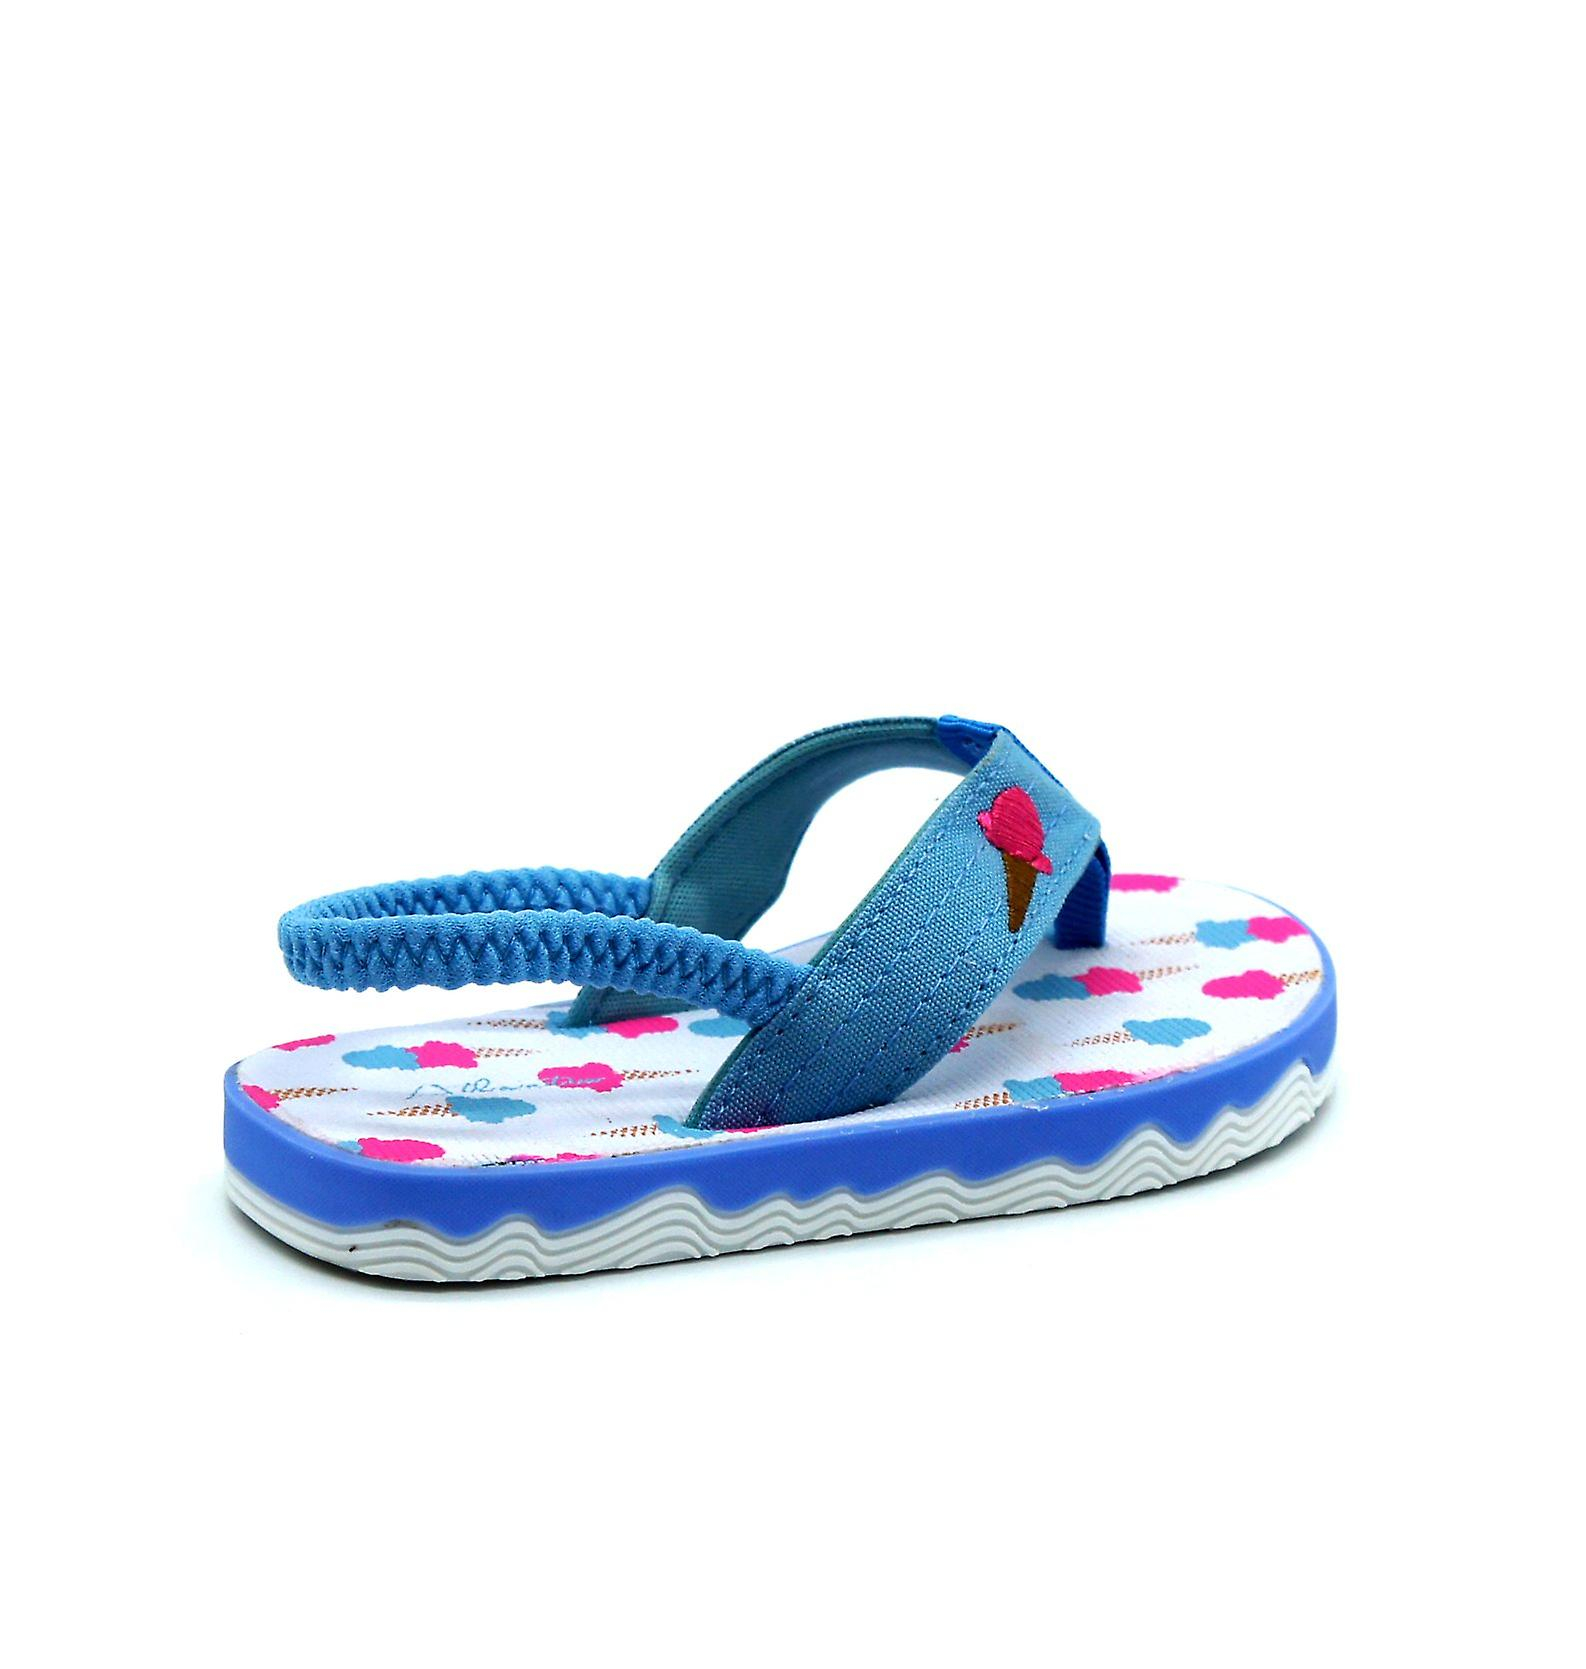 Atlantis Shoes Kids Unisex Girls & Boys Supportive Cushioned Comfortable Sandals Flip Flops Ice Cream Lover Blue